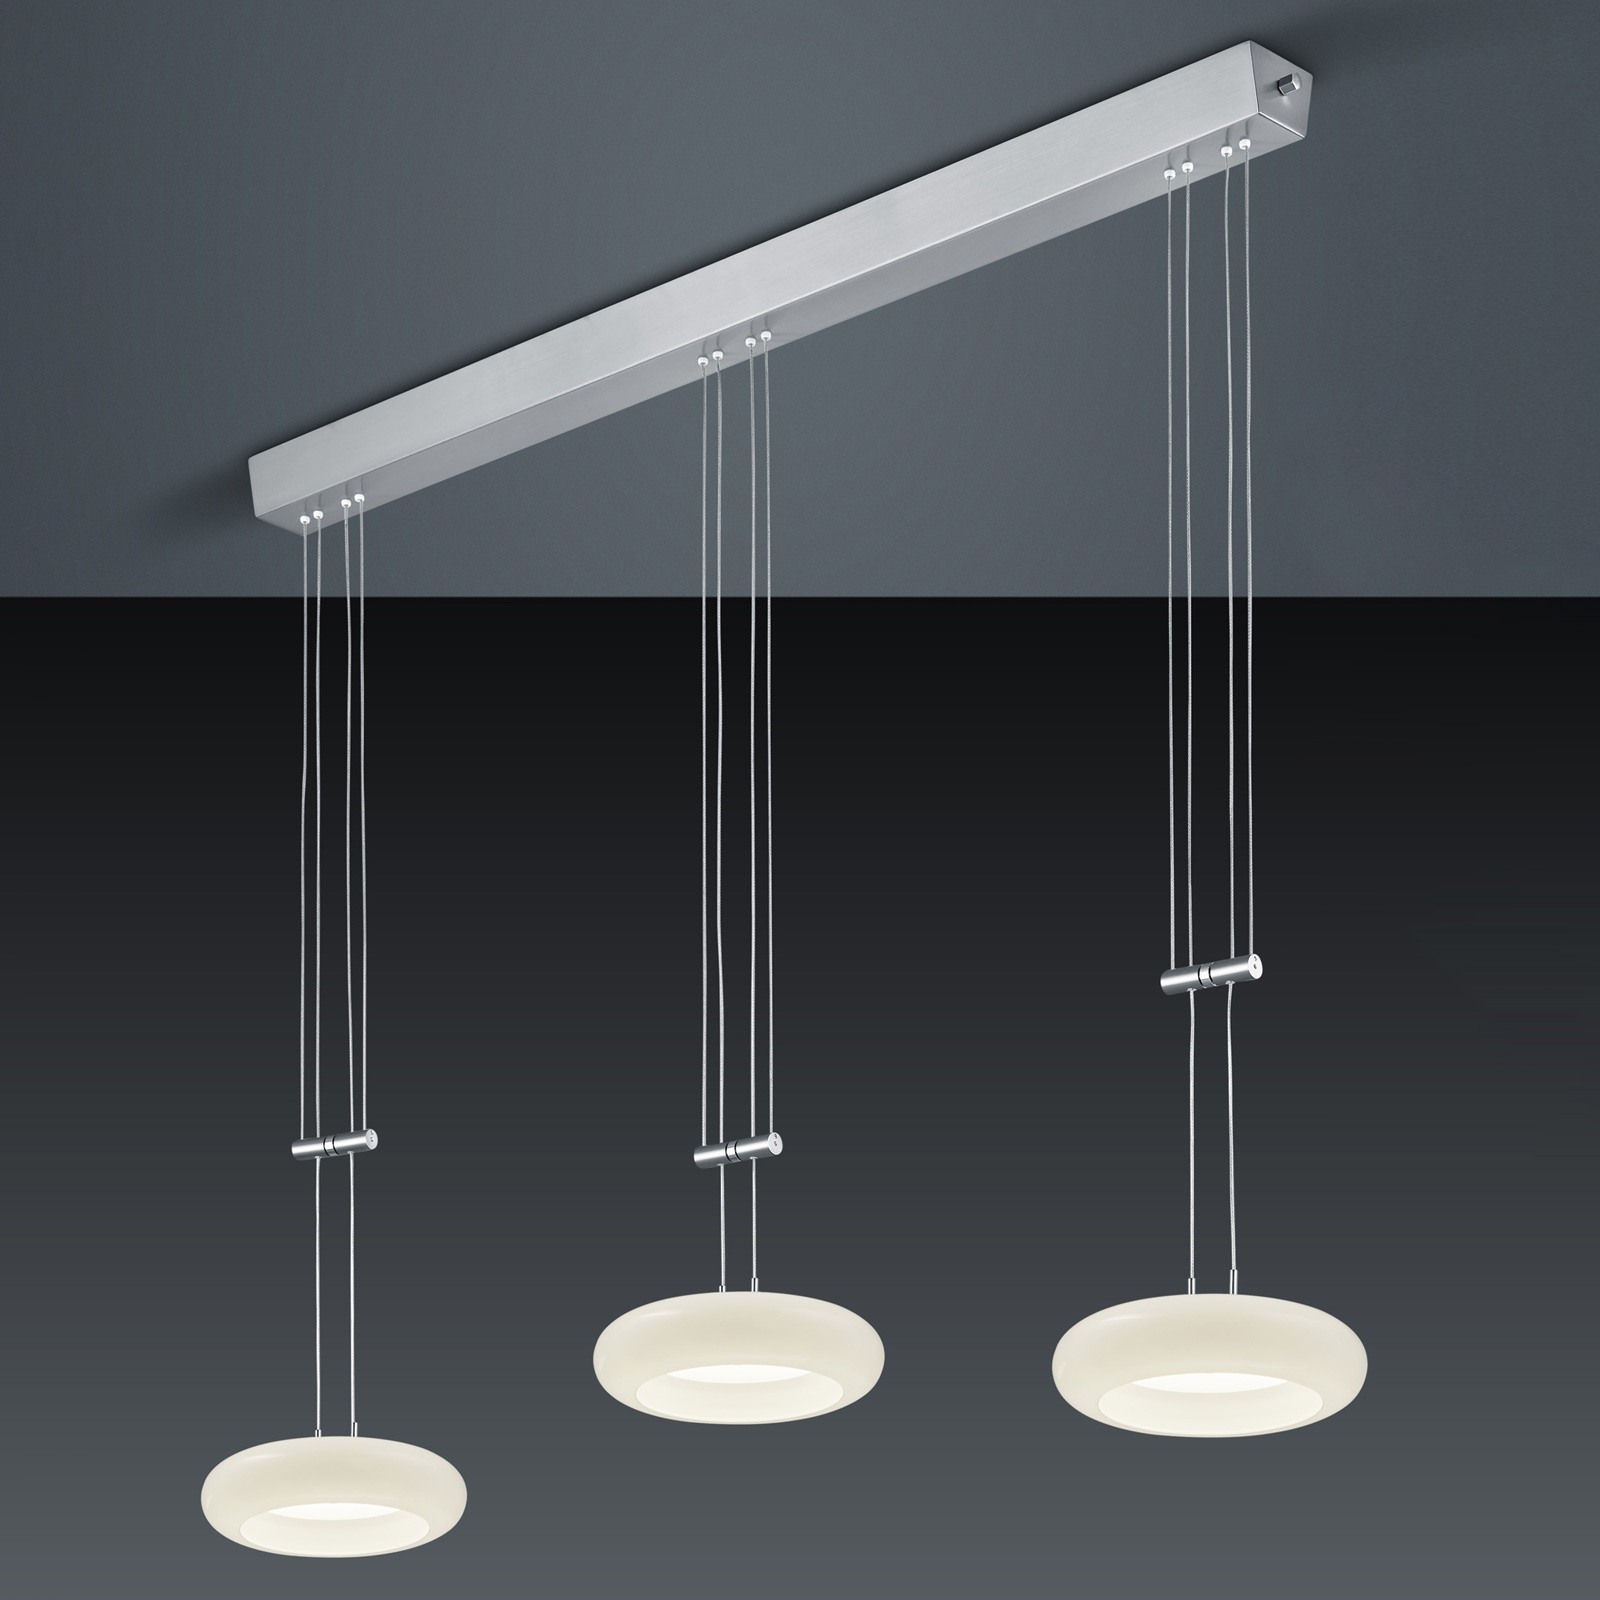 BANKAMP Centa suspension à 3 lampes nickel